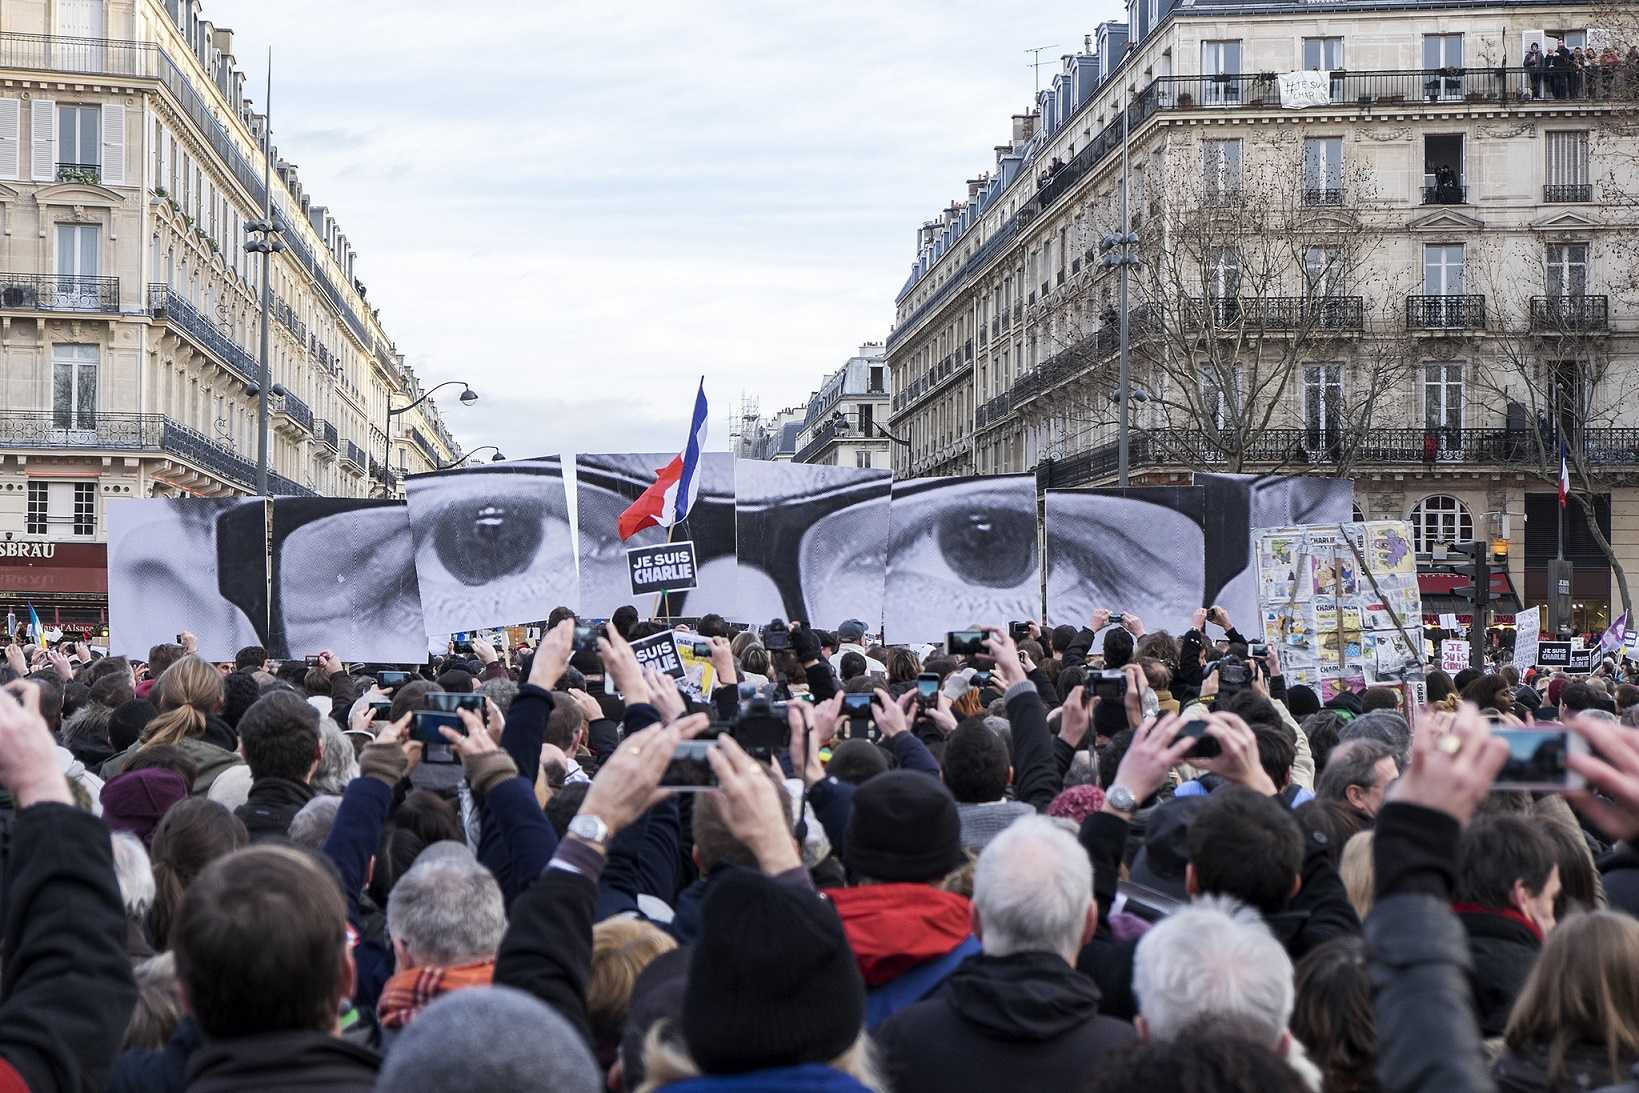 The attack on the Charlie Hebdo offices elicited strong reactions worldwide.